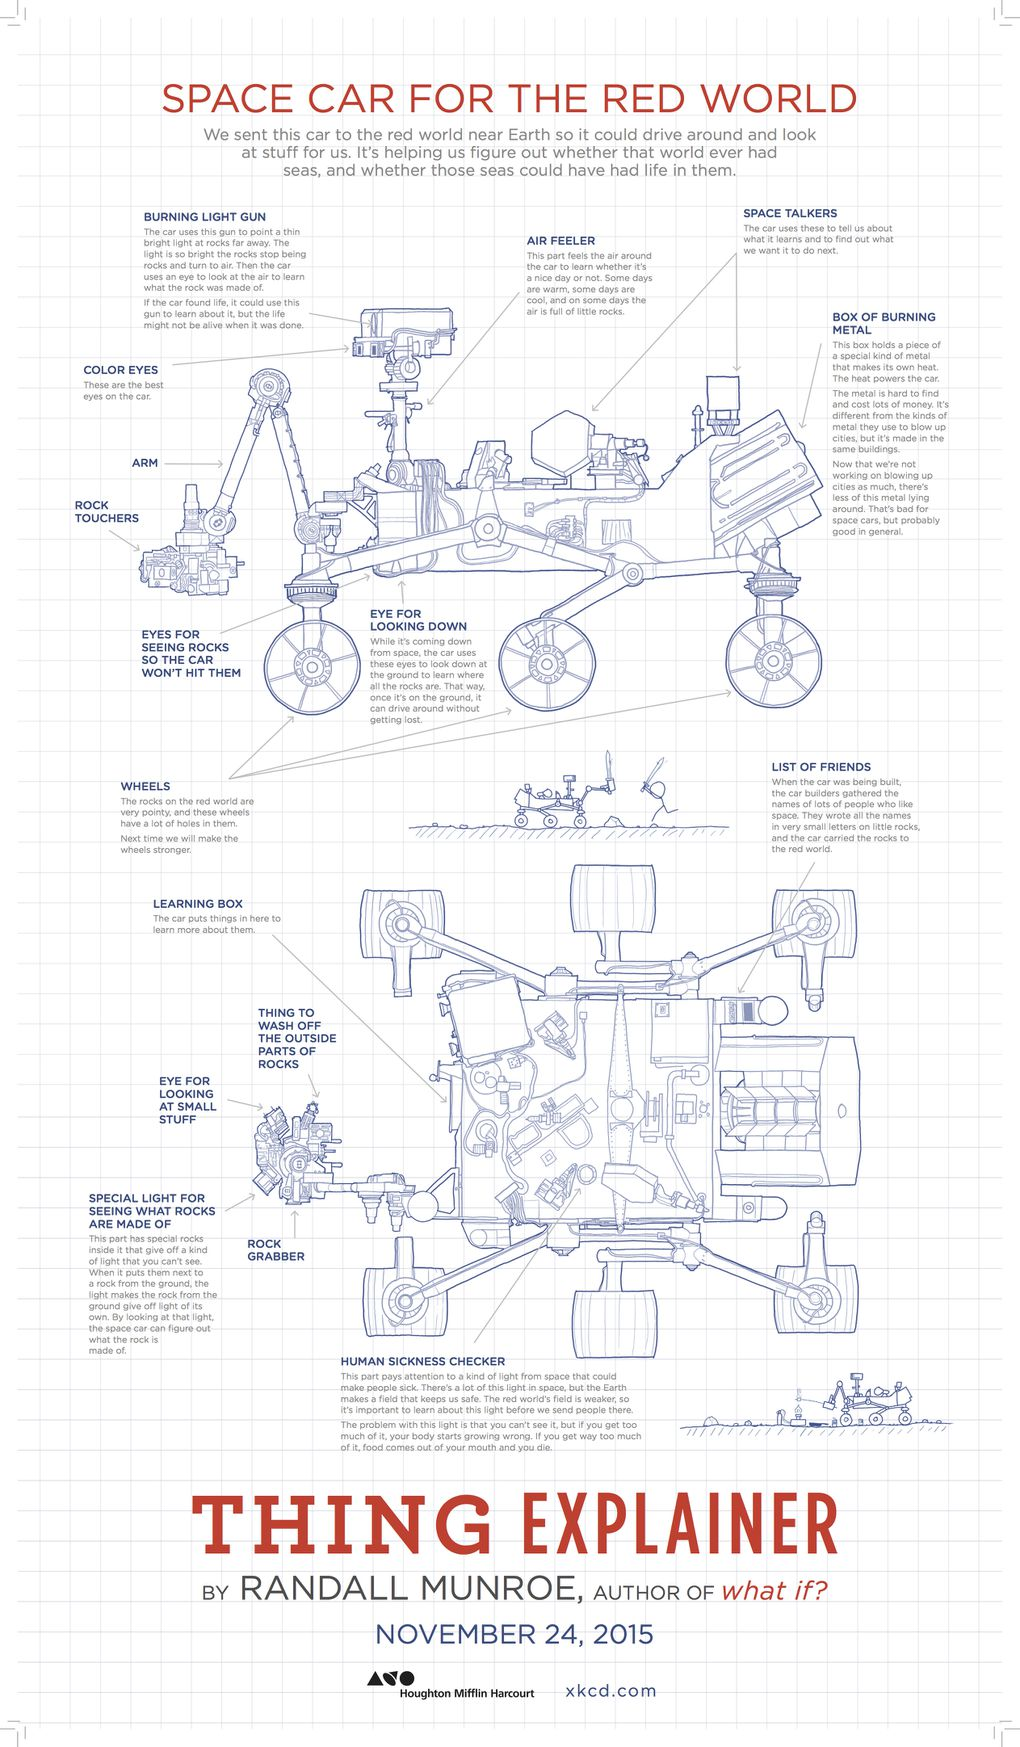 XKCD has a new book about explaining complicated subjects in simple